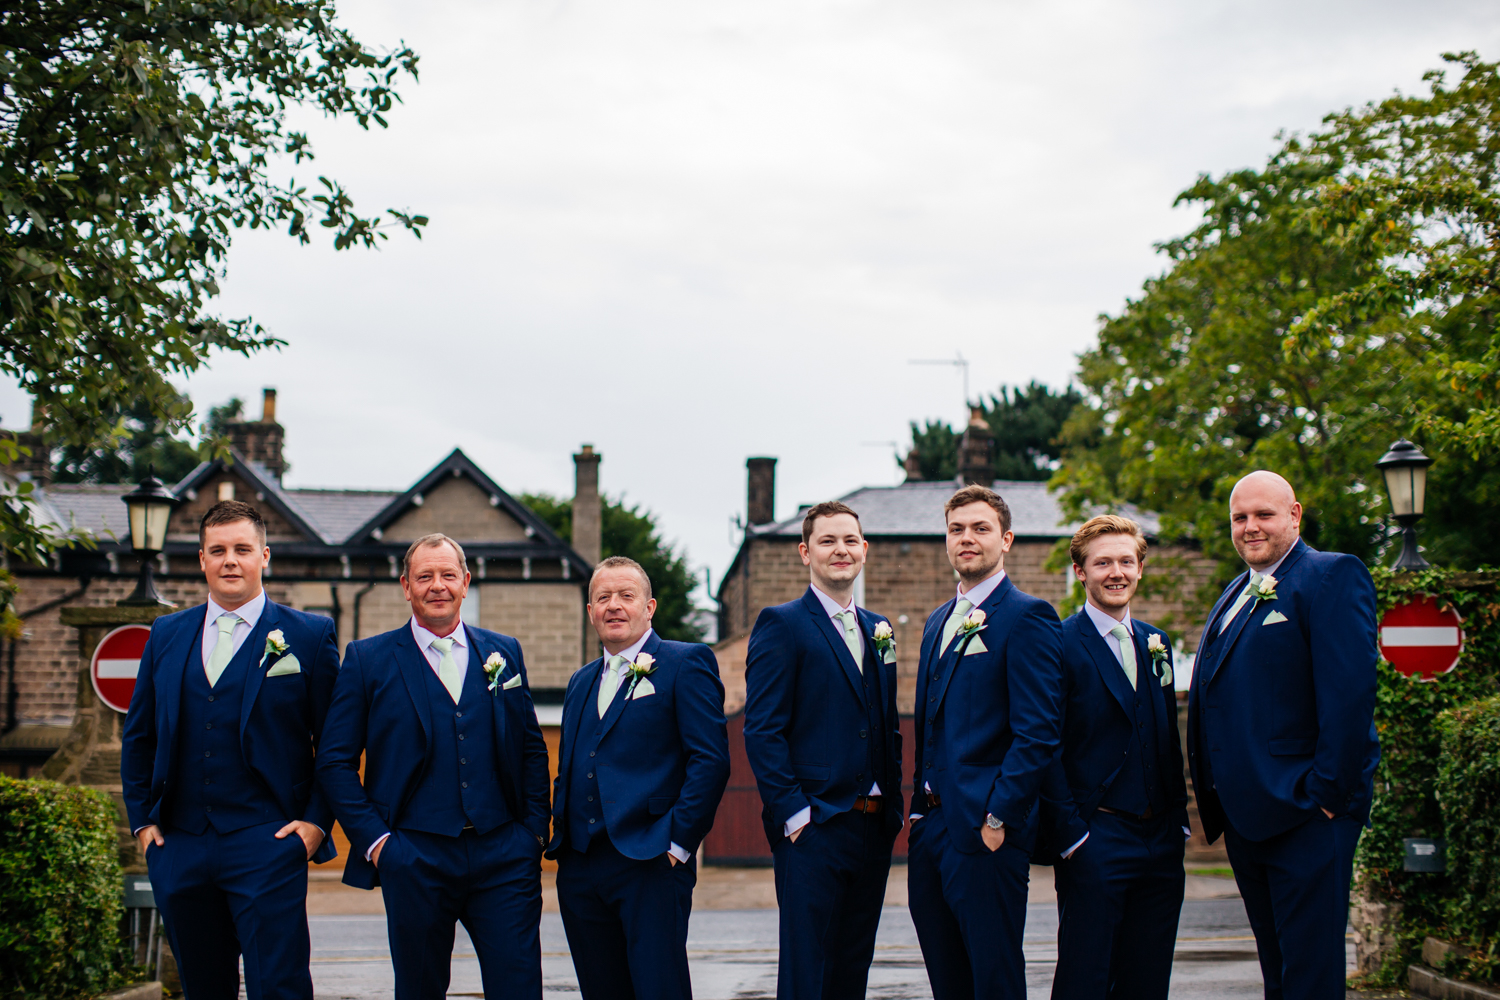 wedding photographers in sheffield9.jpg